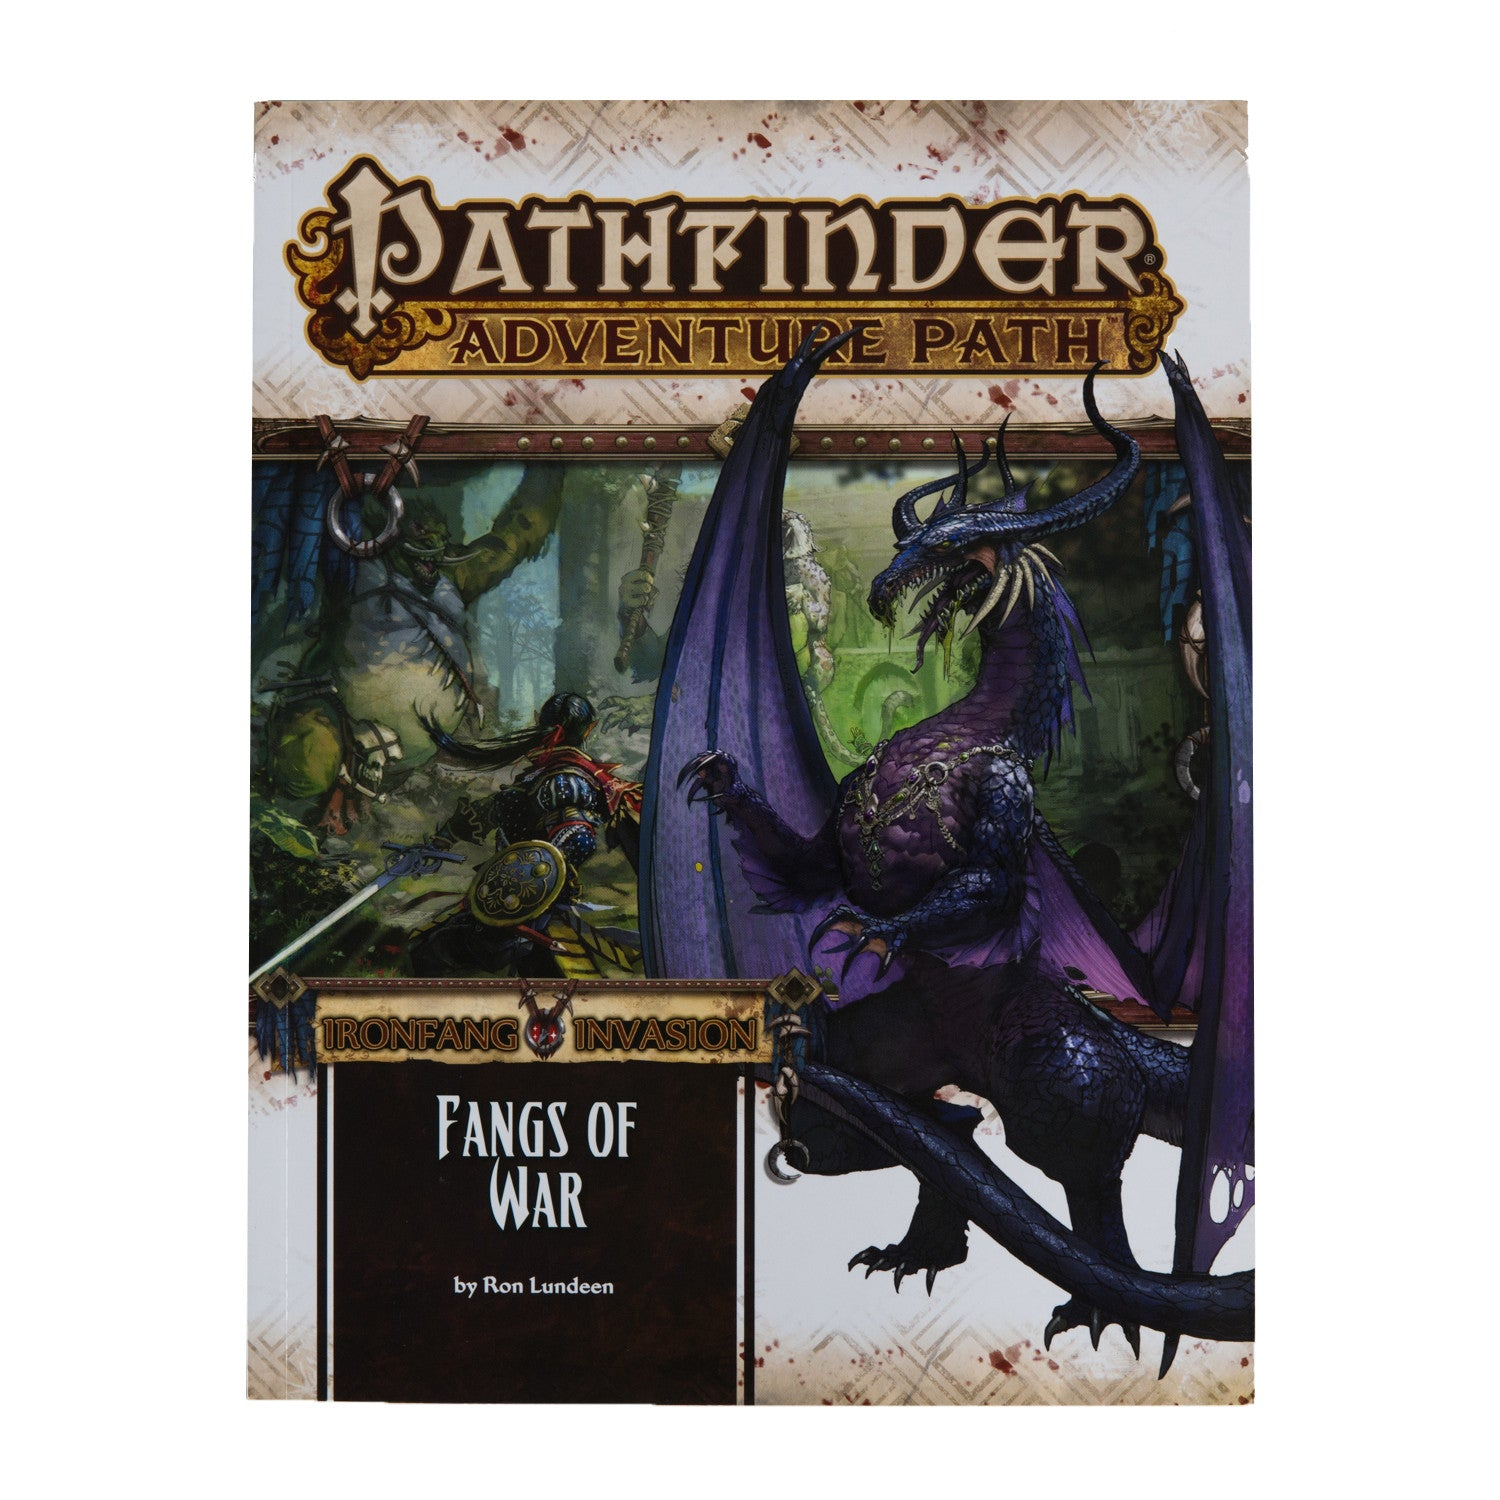 Pathfinder RPG: Adventure Path - Fangs of War (Ironfang Invasion Part 2 of 6)